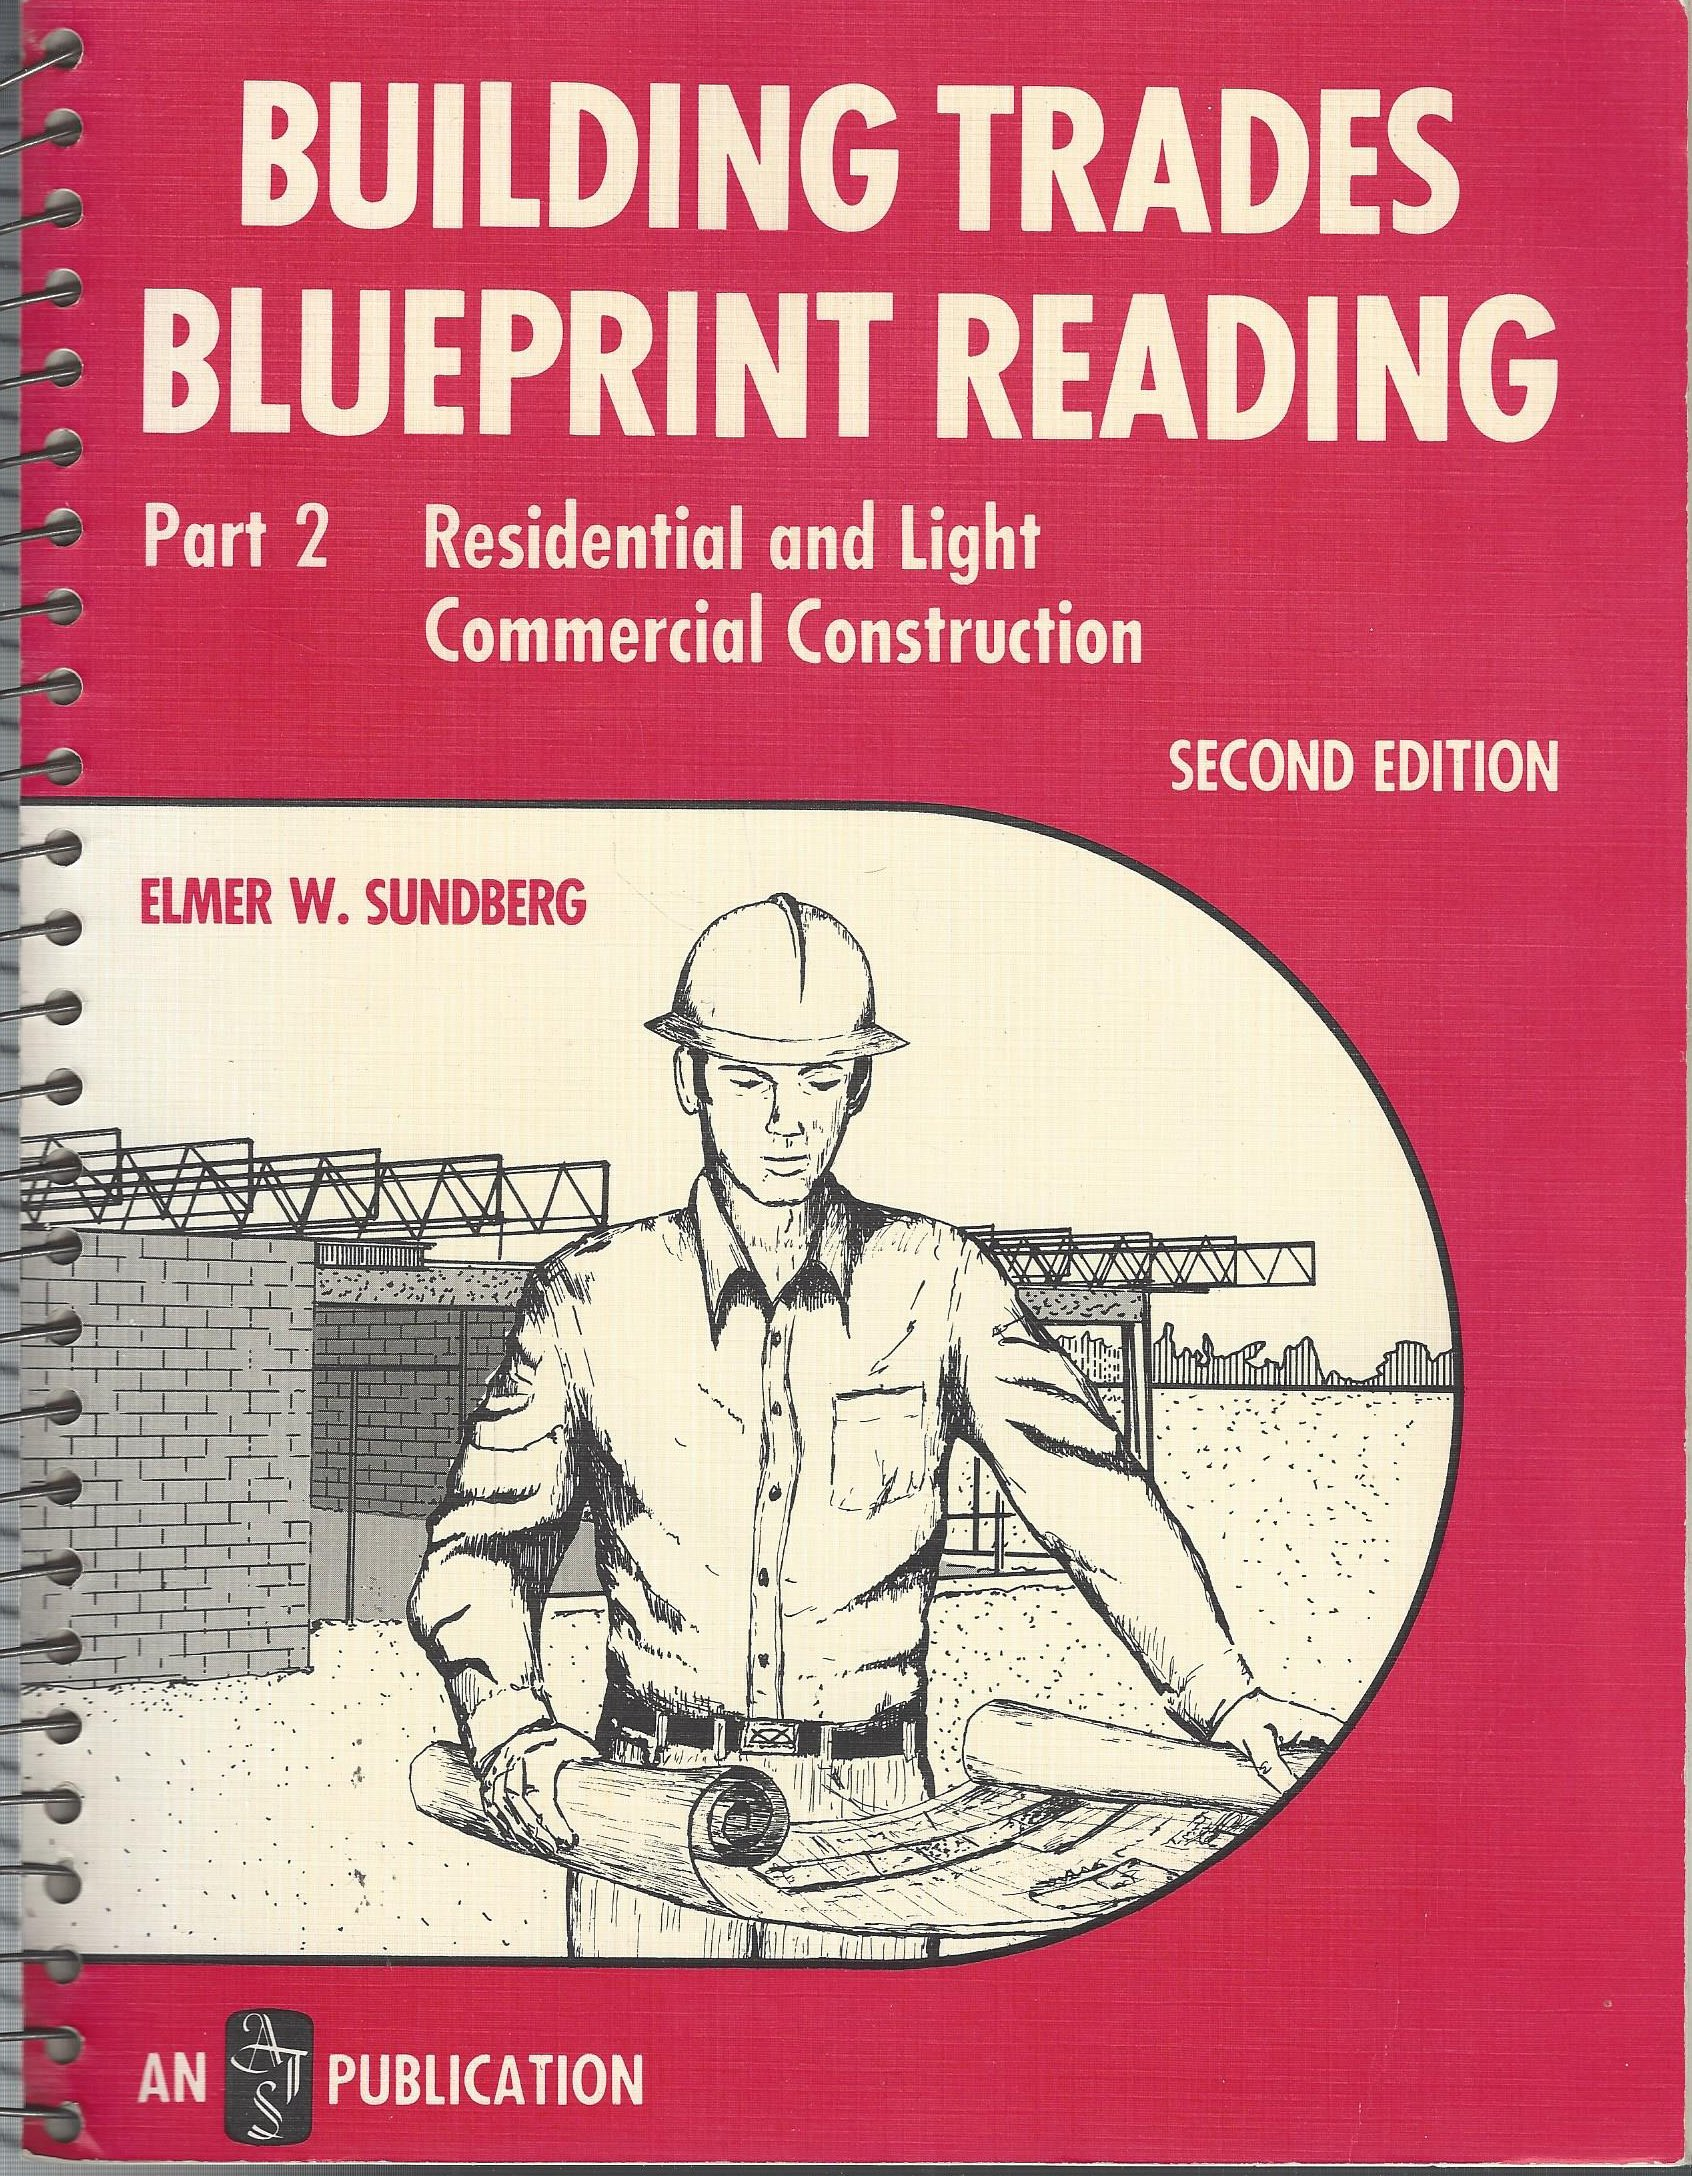 Building trades blueprint reading part 2 residential light building trades blueprint reading part 2 residential light commercial construction elmer w sundberg 9780826904478 amazon books malvernweather